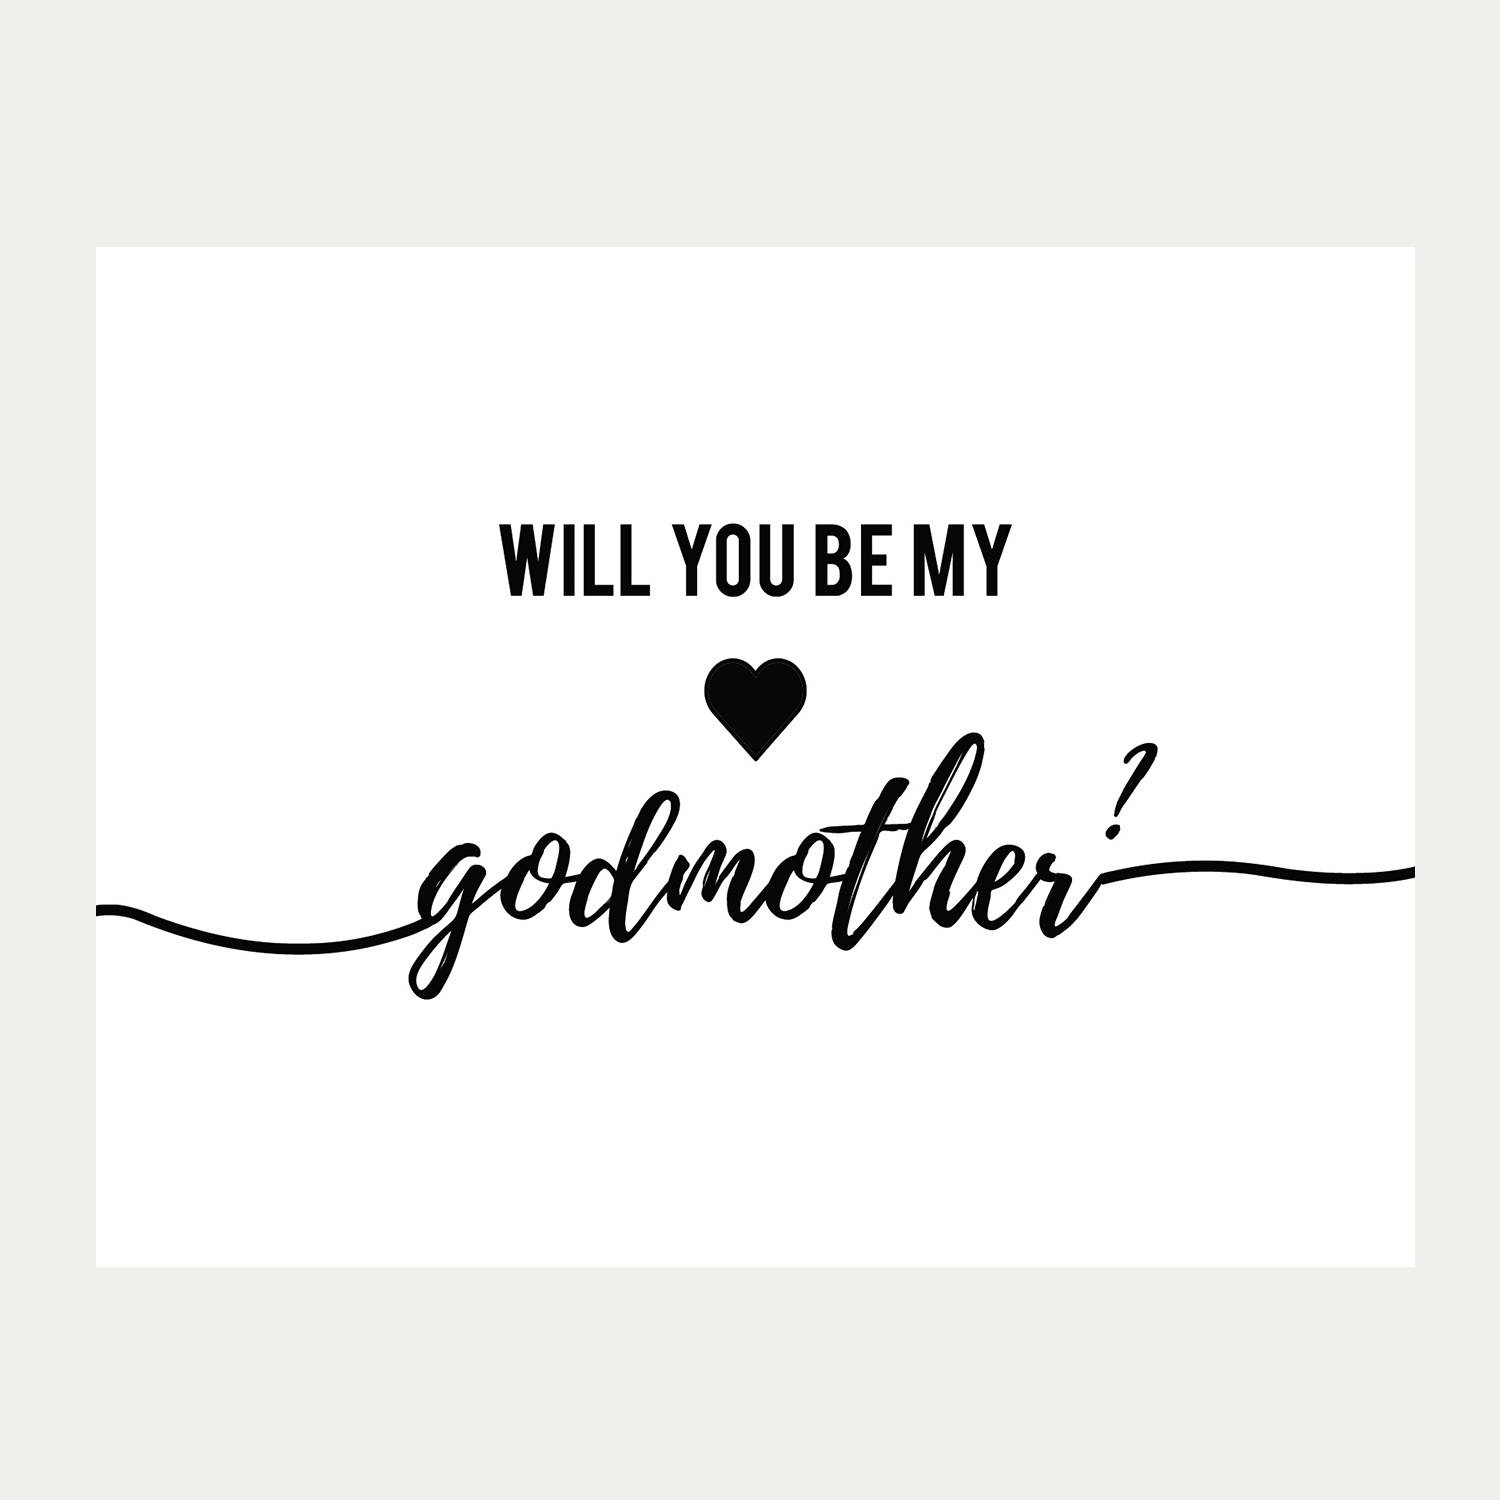 Will You Be My Godmother Card Printable Baptism Card   Etsy - Will You Be My Godmother Printable Card Free